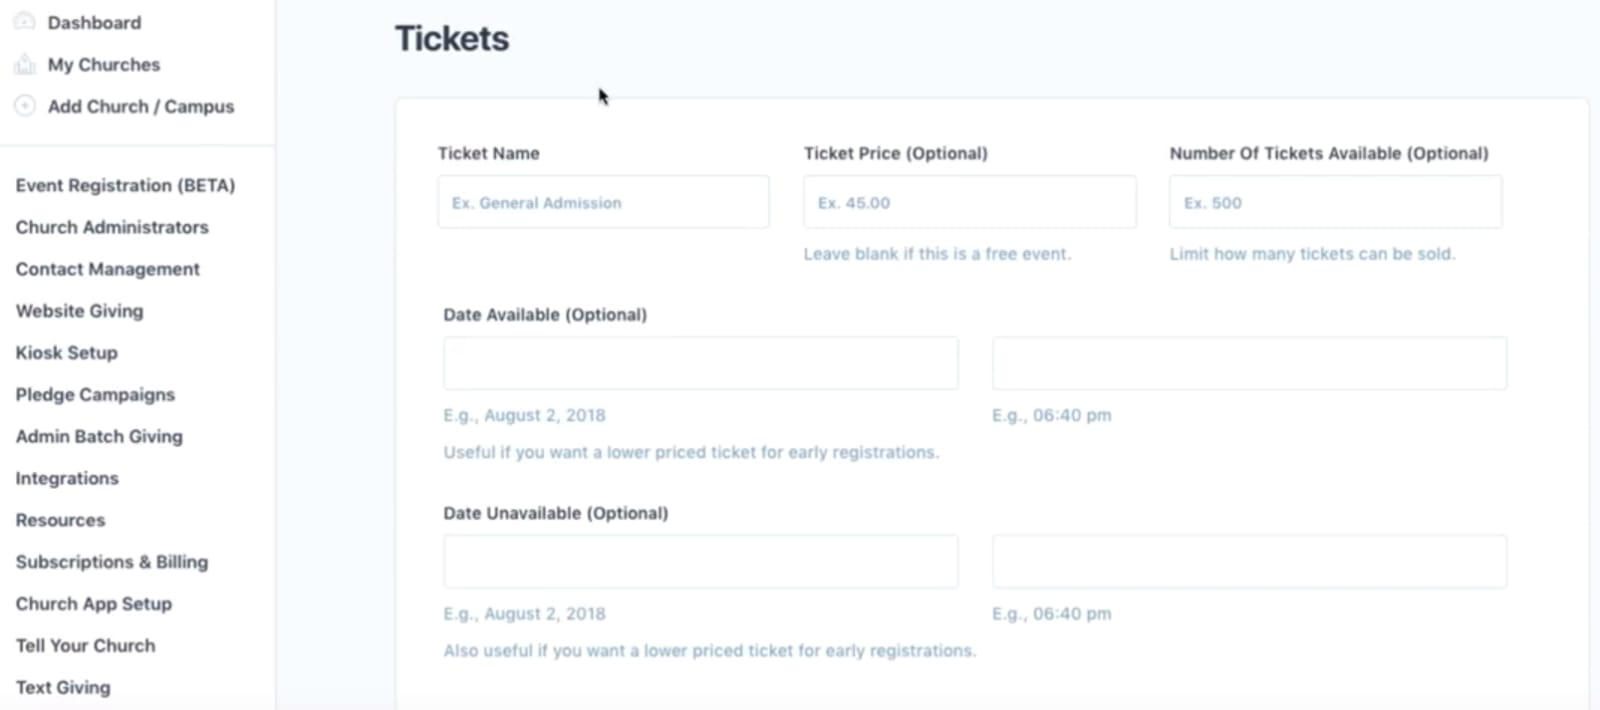 Tithe.ly Ticketing Page